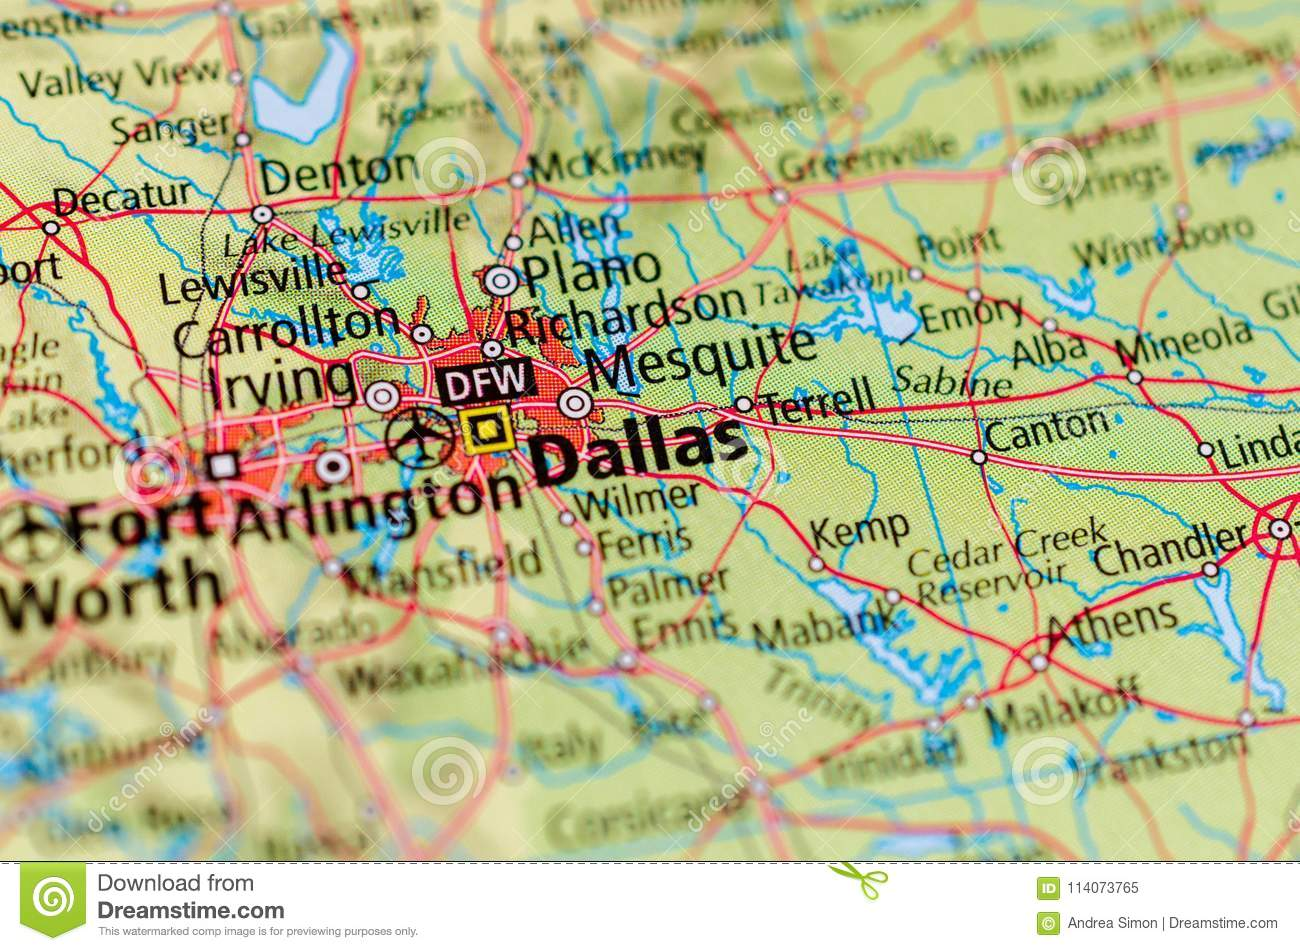 Dallas on map stock image. Image of page, explore ... on dallas ft.worth, dallas fort worth airport map, dallas fort worth texas map, ft.worth map, arlington and fort worth map, greater dallas fort worth map, dallas fort worth map vector, dallas fort worth area, dallas fort worth metroplex cities,